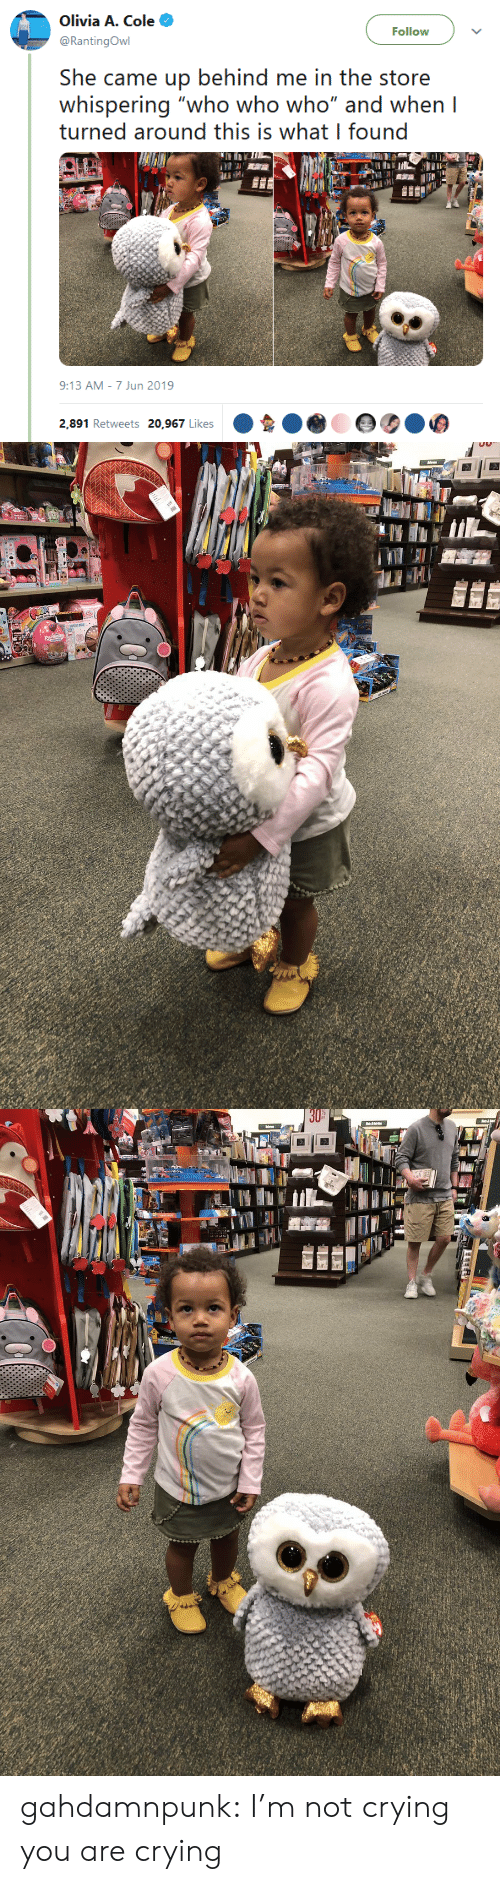 "Crying, Not Crying, and Target: Olivia A. Cole  Follow  @RantingOwl  She came up behind me in the store  whispering ""who who who"" and when I  turned around this is what I found  9:13 AM 7 Jun 2019  2,891 Retweets 20,967 Likes gahdamnpunk: I'm not crying you are crying"